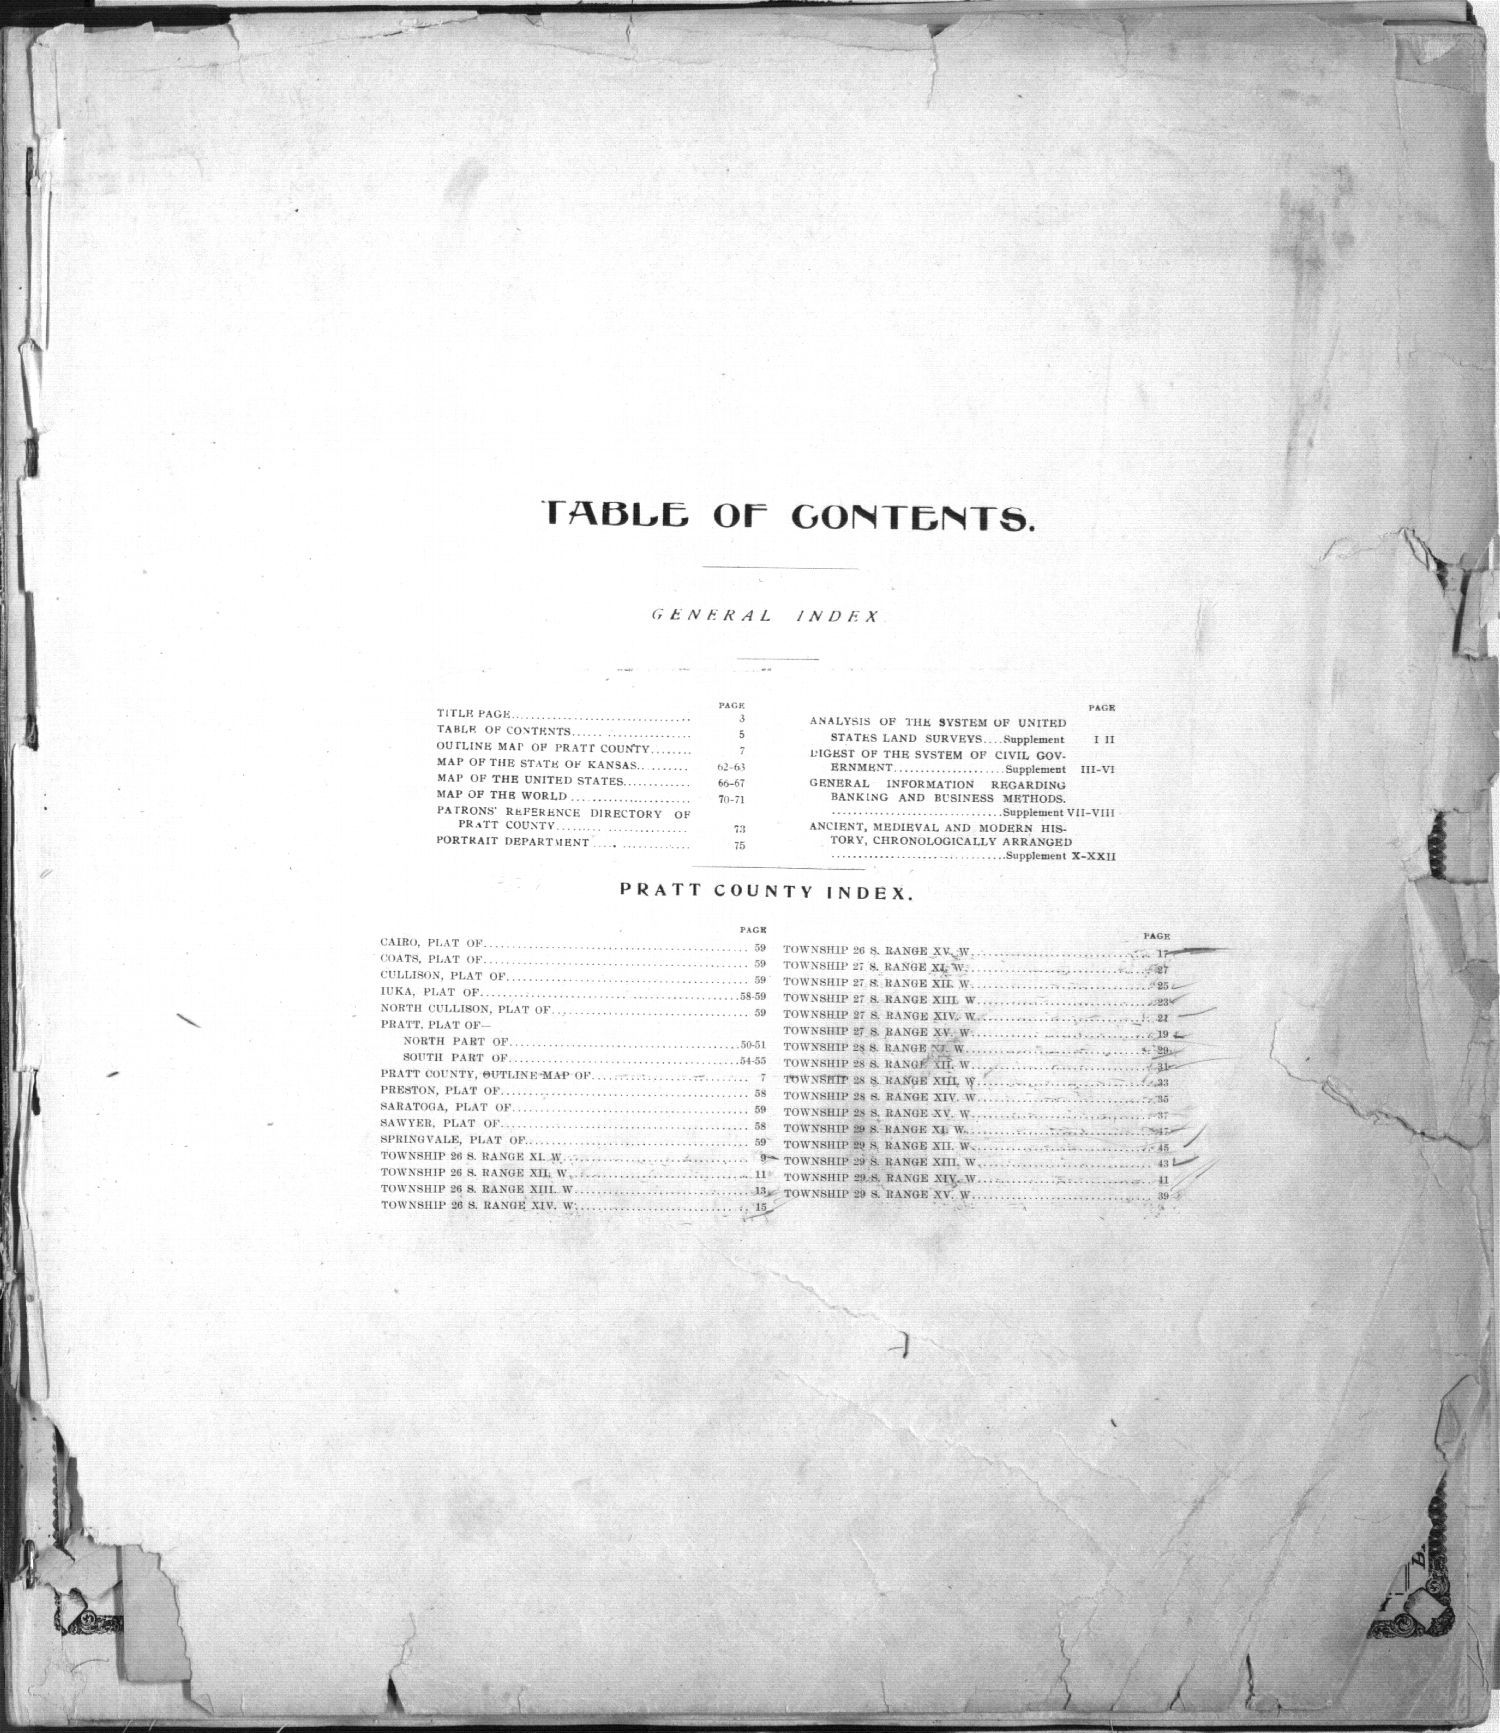 Standard atlas of Pratt County, Kansas - Table of contents